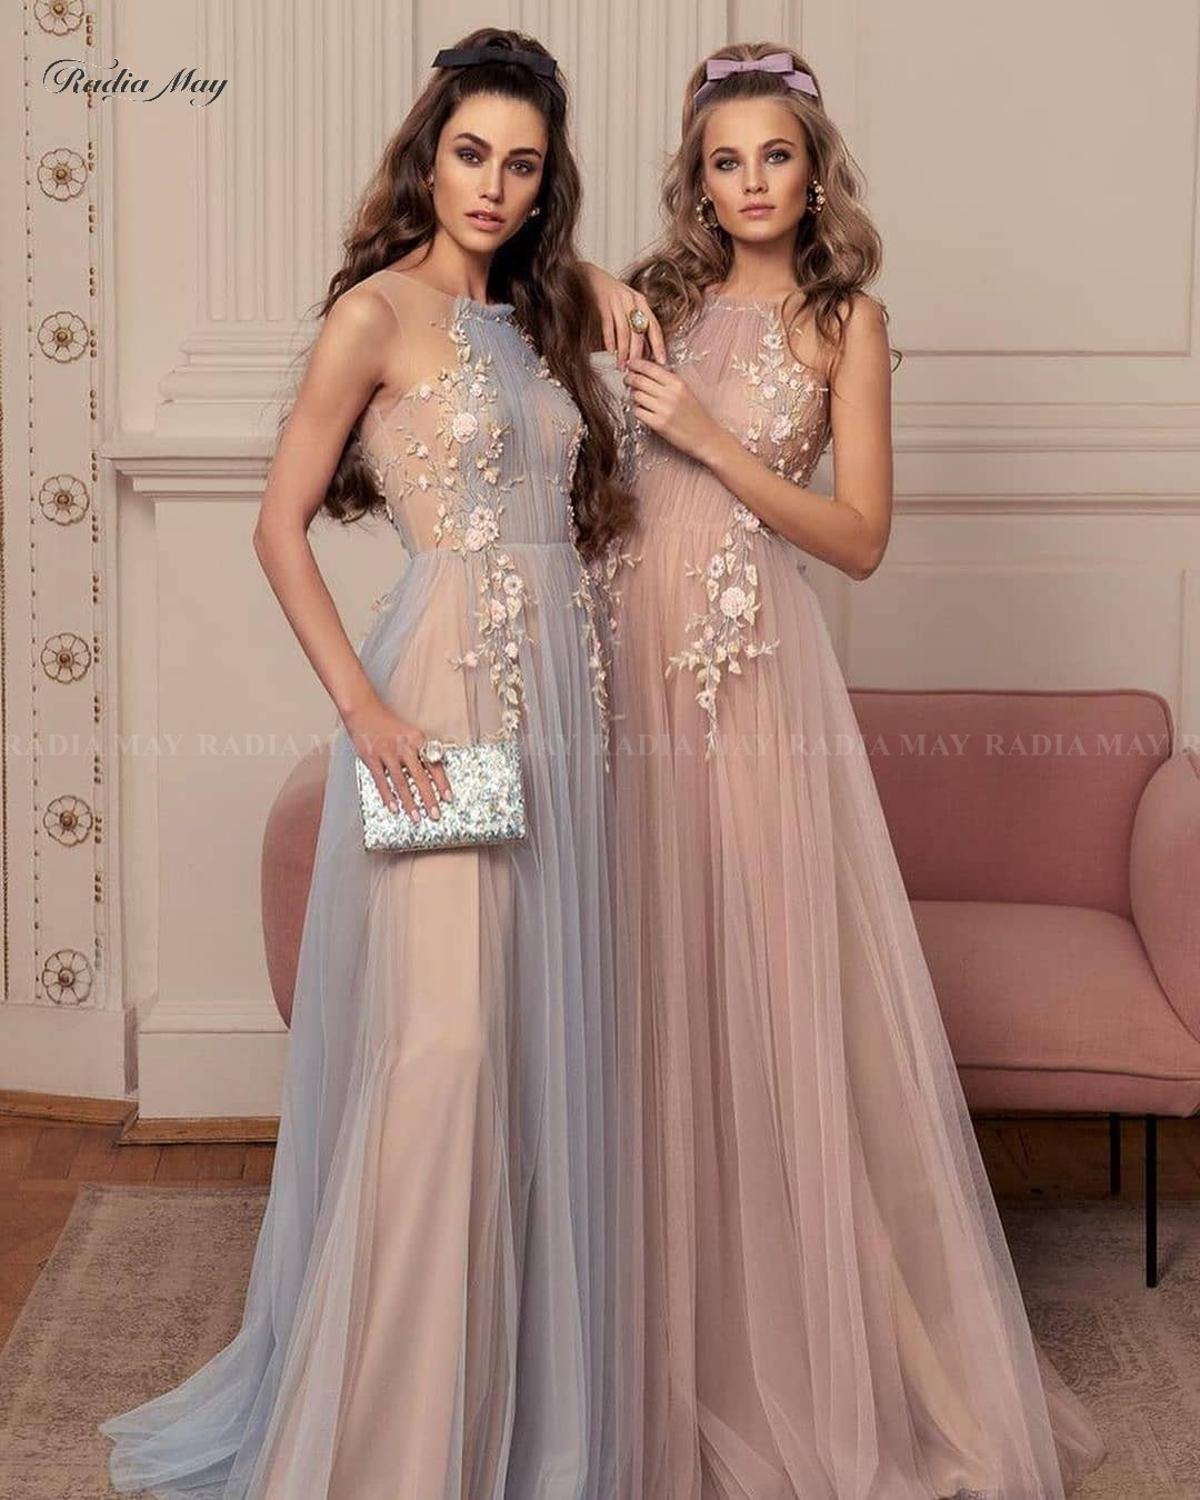 Elegant 3D Flowers Blue Champagne Evening Dress 2020 Long Special Occasion Dresses Women A-line Tulle Arabic Formal Prom Gowns